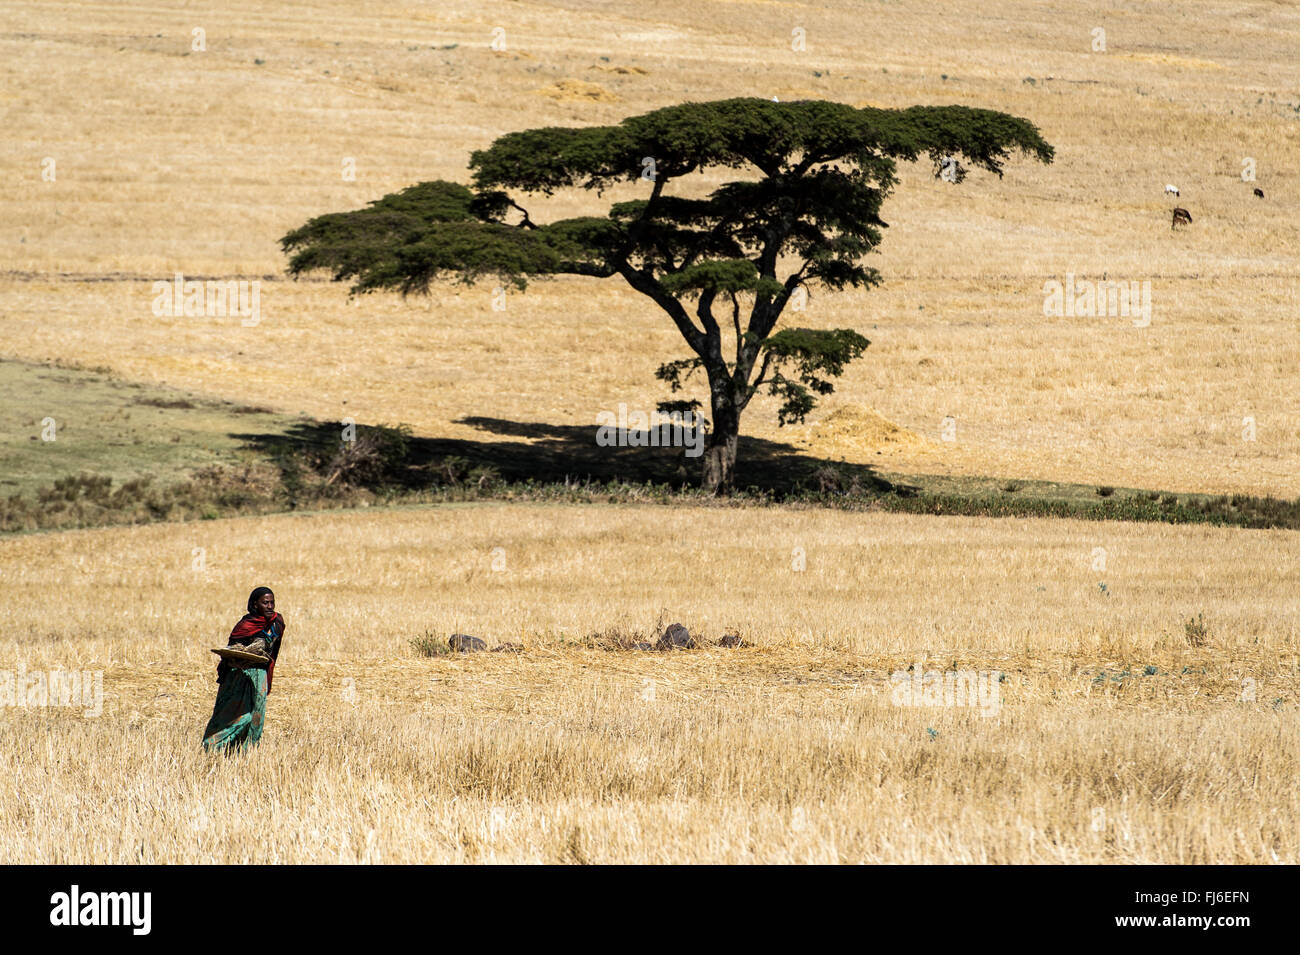 Local farmer in the fields, Ethiopia, Africa - Stock Image